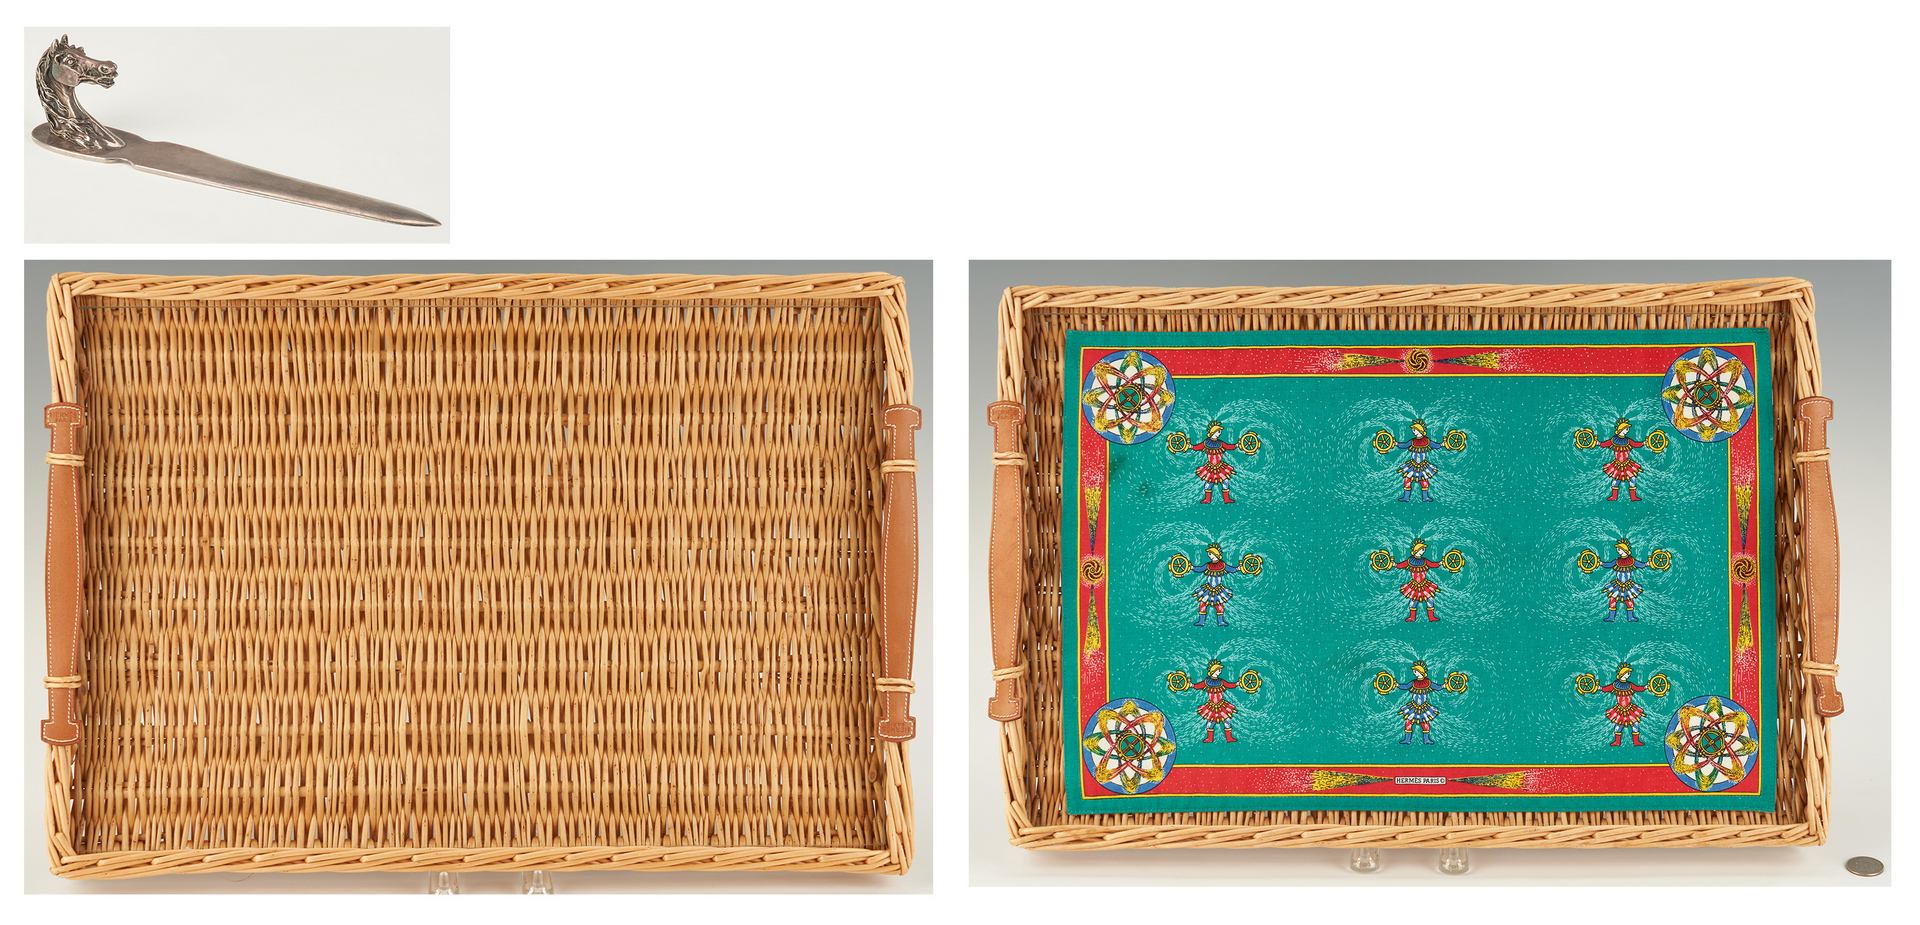 Lot 865: Hermes Trays, Placemat and Letter Opener, 4 items